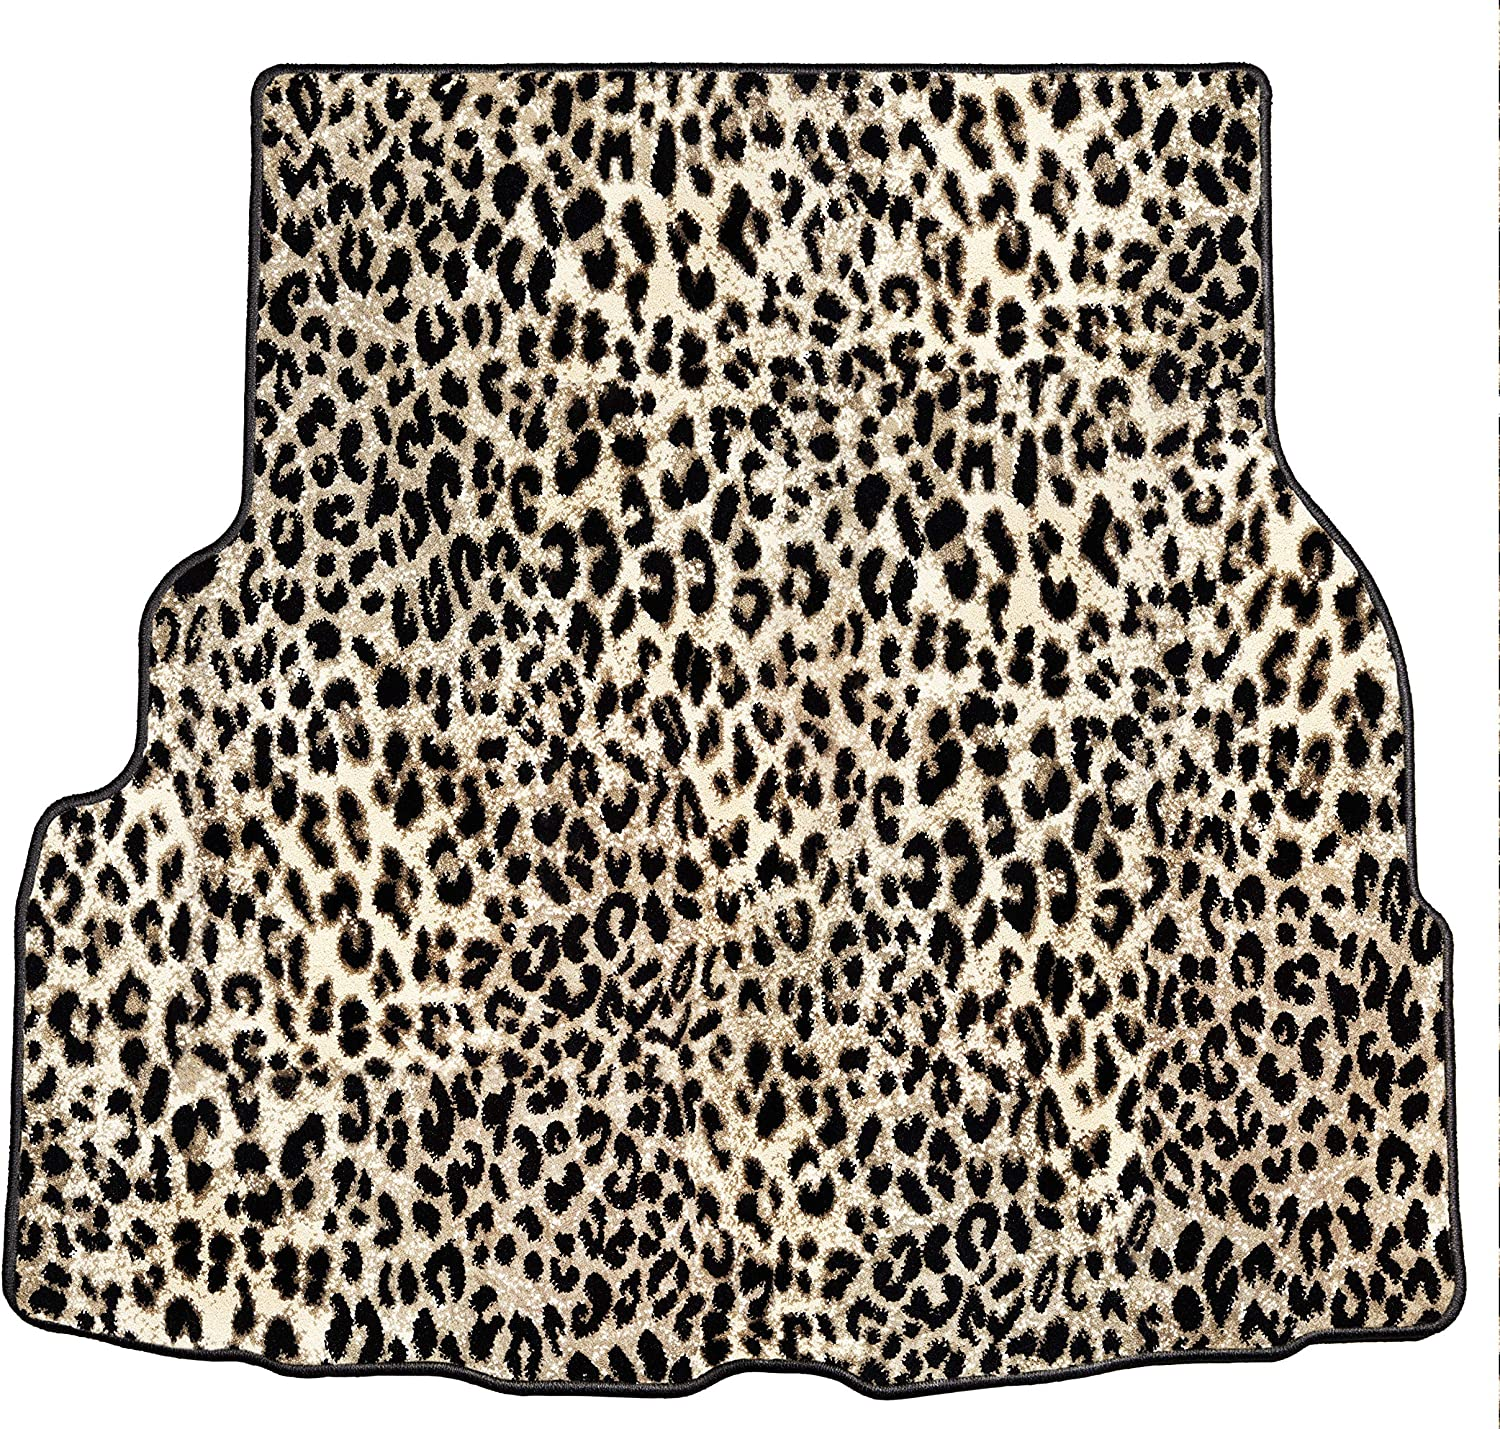 GGBAILEY Limited time sale Leopard Trunk Topics on TV Mat Floor Lexus for Custom-Fit Mats ES300